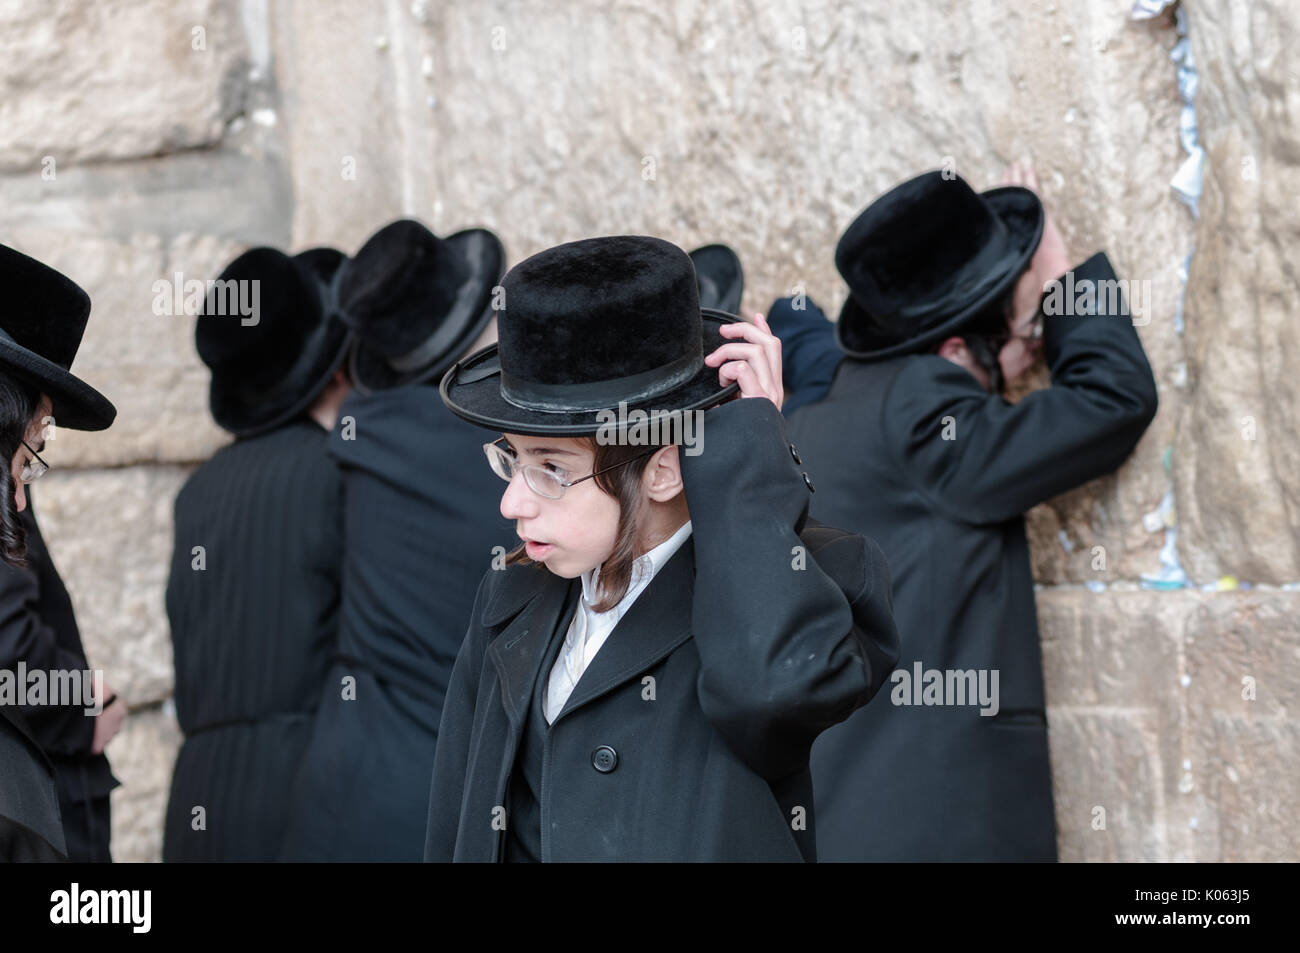 A Hasid boy among others at the Western Wall. This denomination of Orthodox Judaism concentrates on spiritual contact with God through vivid praying. - Stock Image